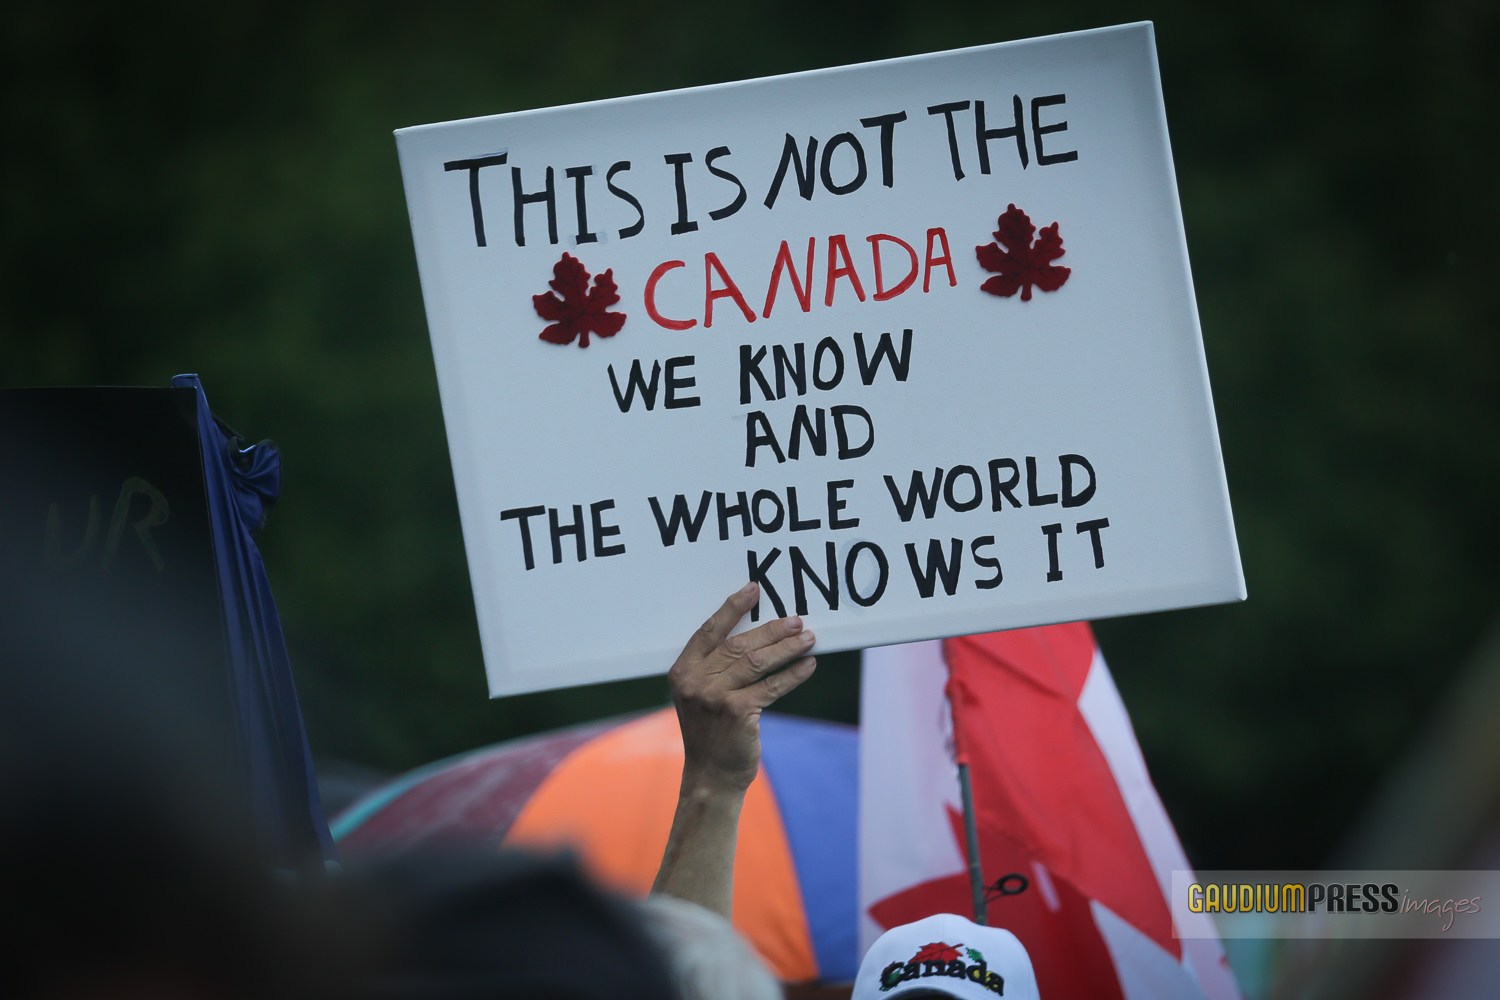 Protesters march agains the vandalizing of Churches in Canada